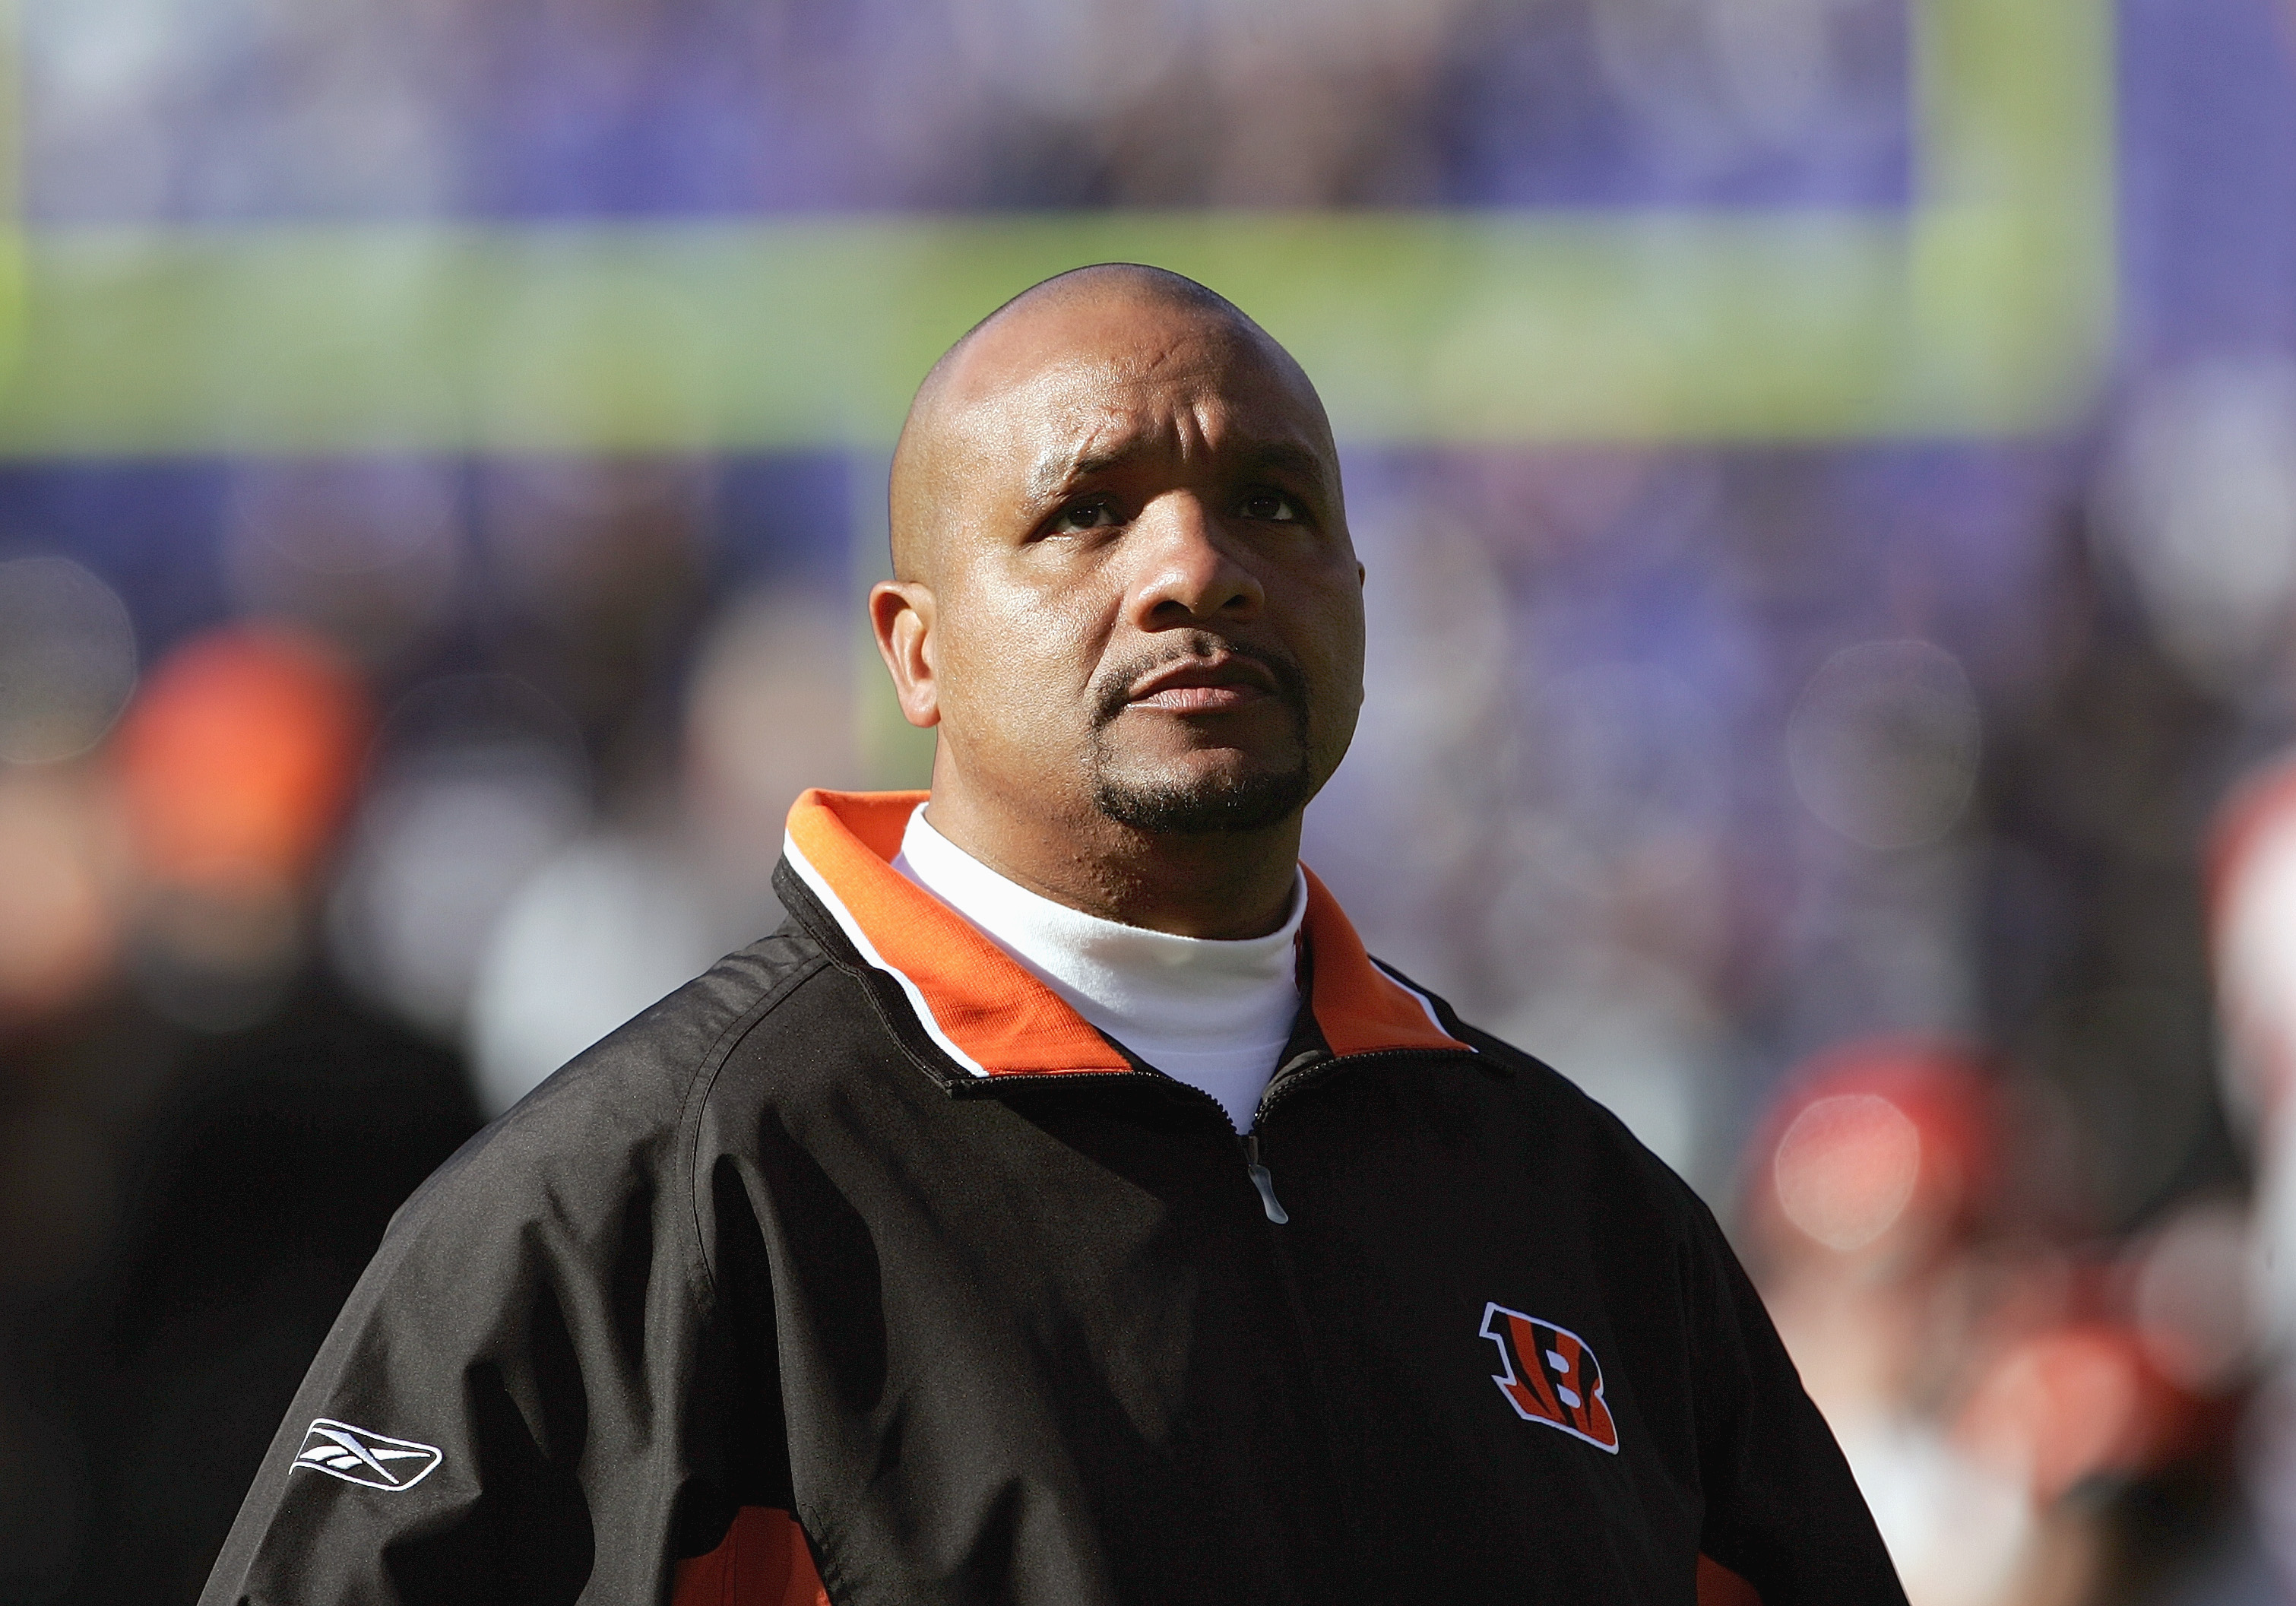 BALTIMORE - DECEMBER 5:  Wide receivers coach Hue Jackson of the Cincinnati Bengals looks on before the game against the Baltimore Ravens at M&T Bank Stadium on December 5, 2004 in Baltimore, Maryland.  The Bengals defeated the Ravens 27-26.  (Photo by Do